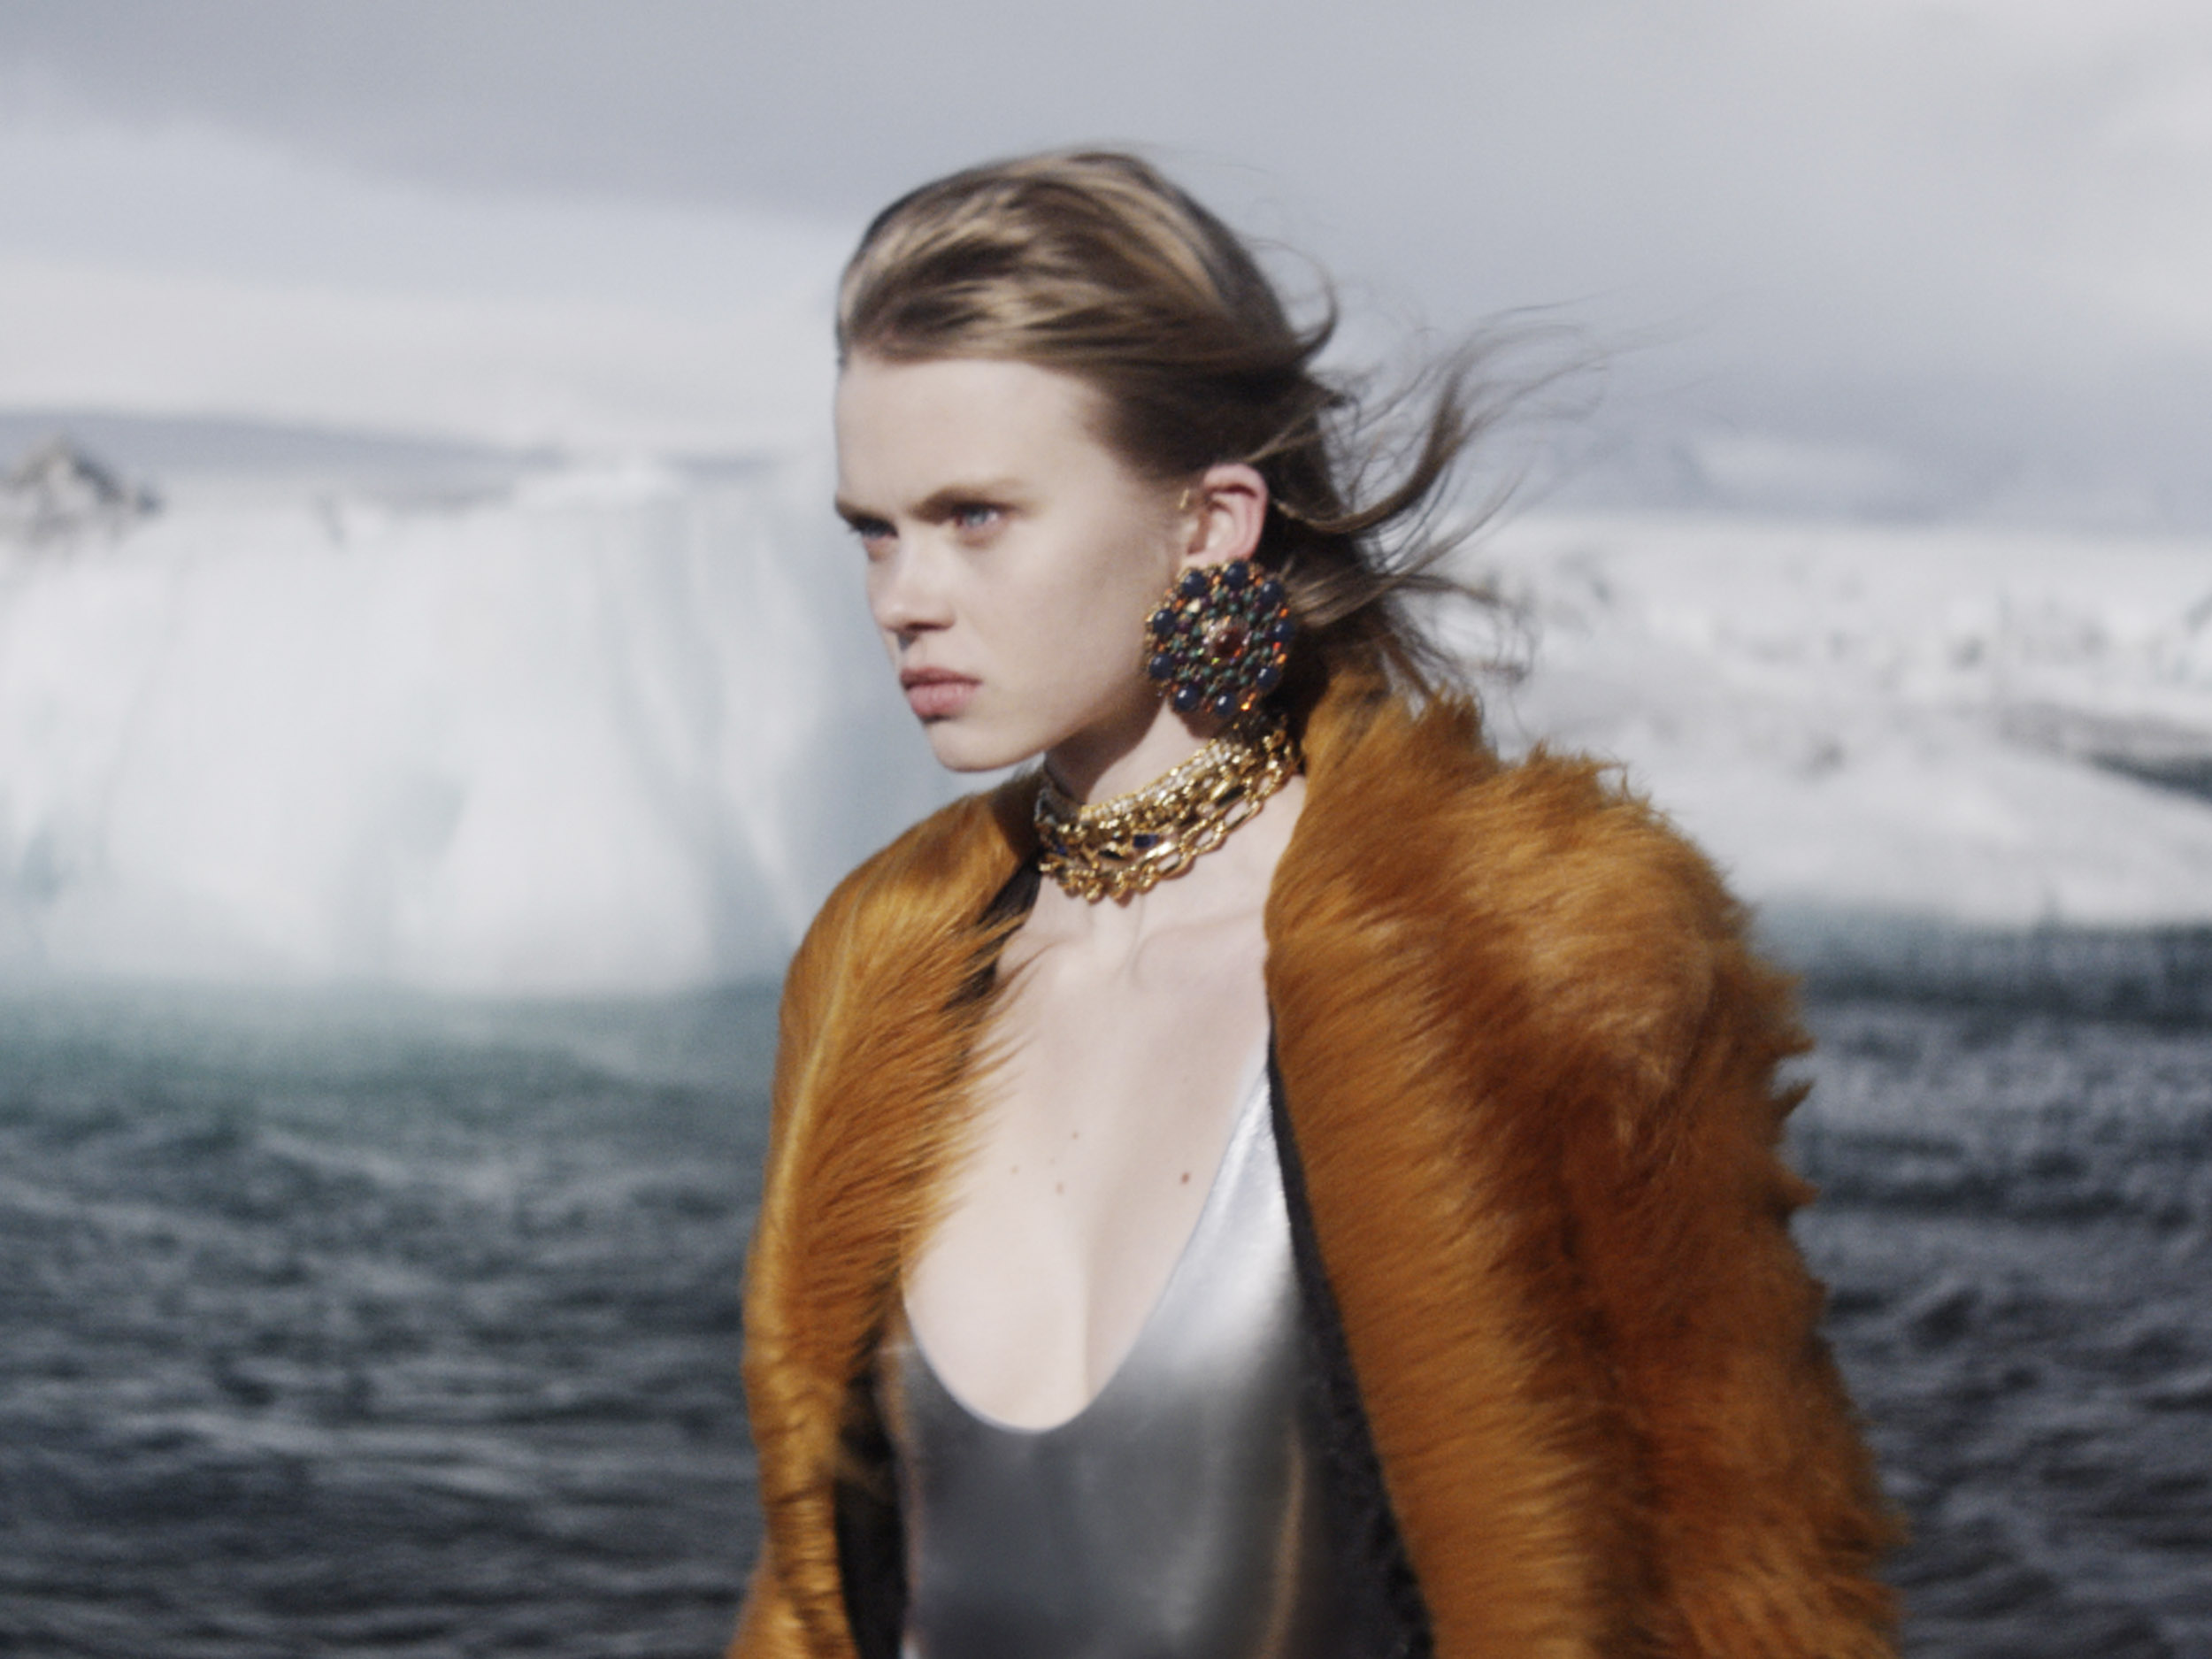 Saint Laurent honors the awe-inspiring intensity of nature and the feminine